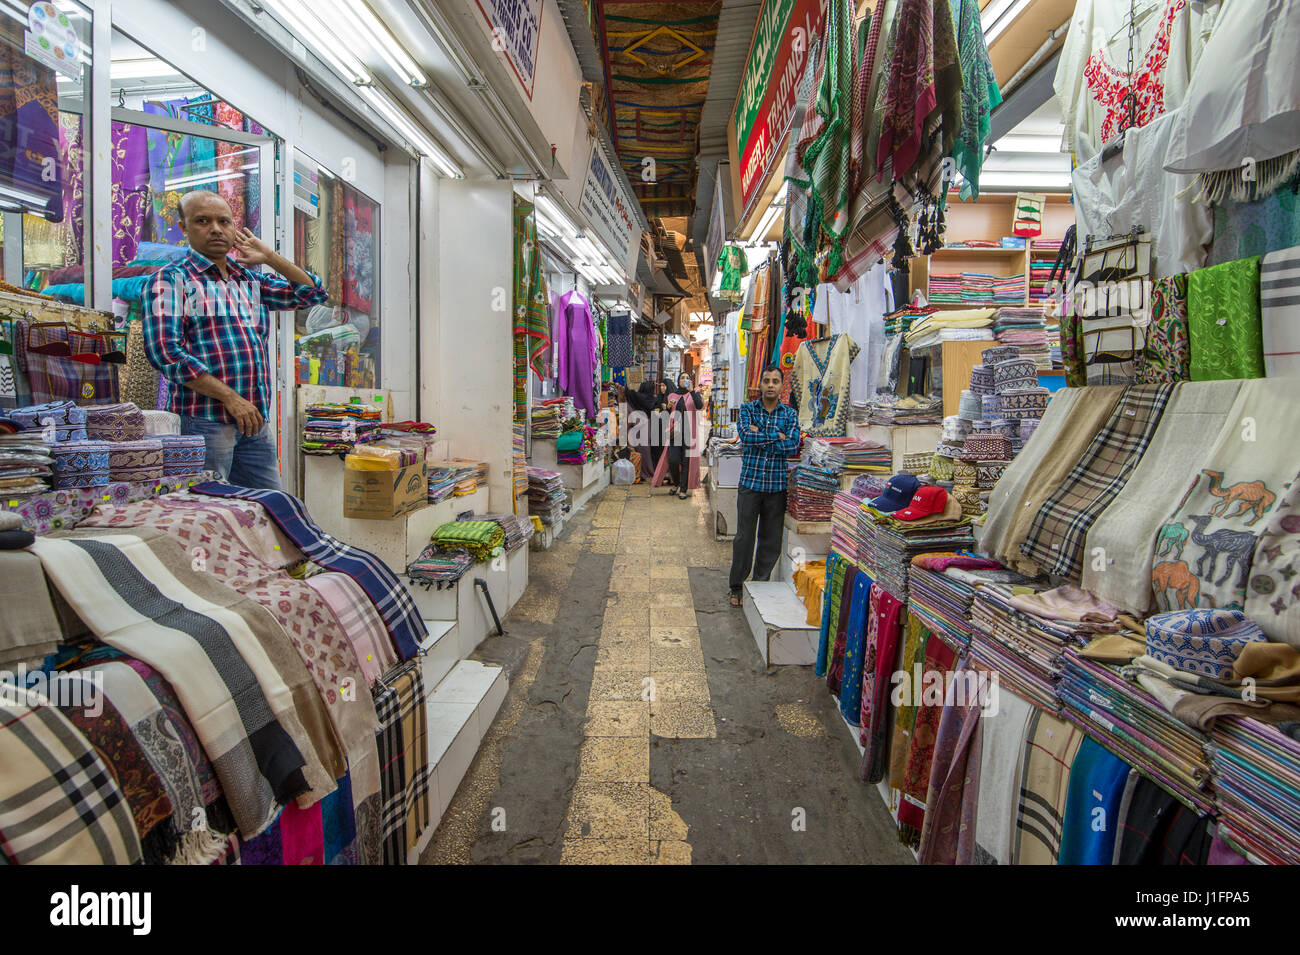 Muscat, Oman - Souq Muttrah View down narrow street in